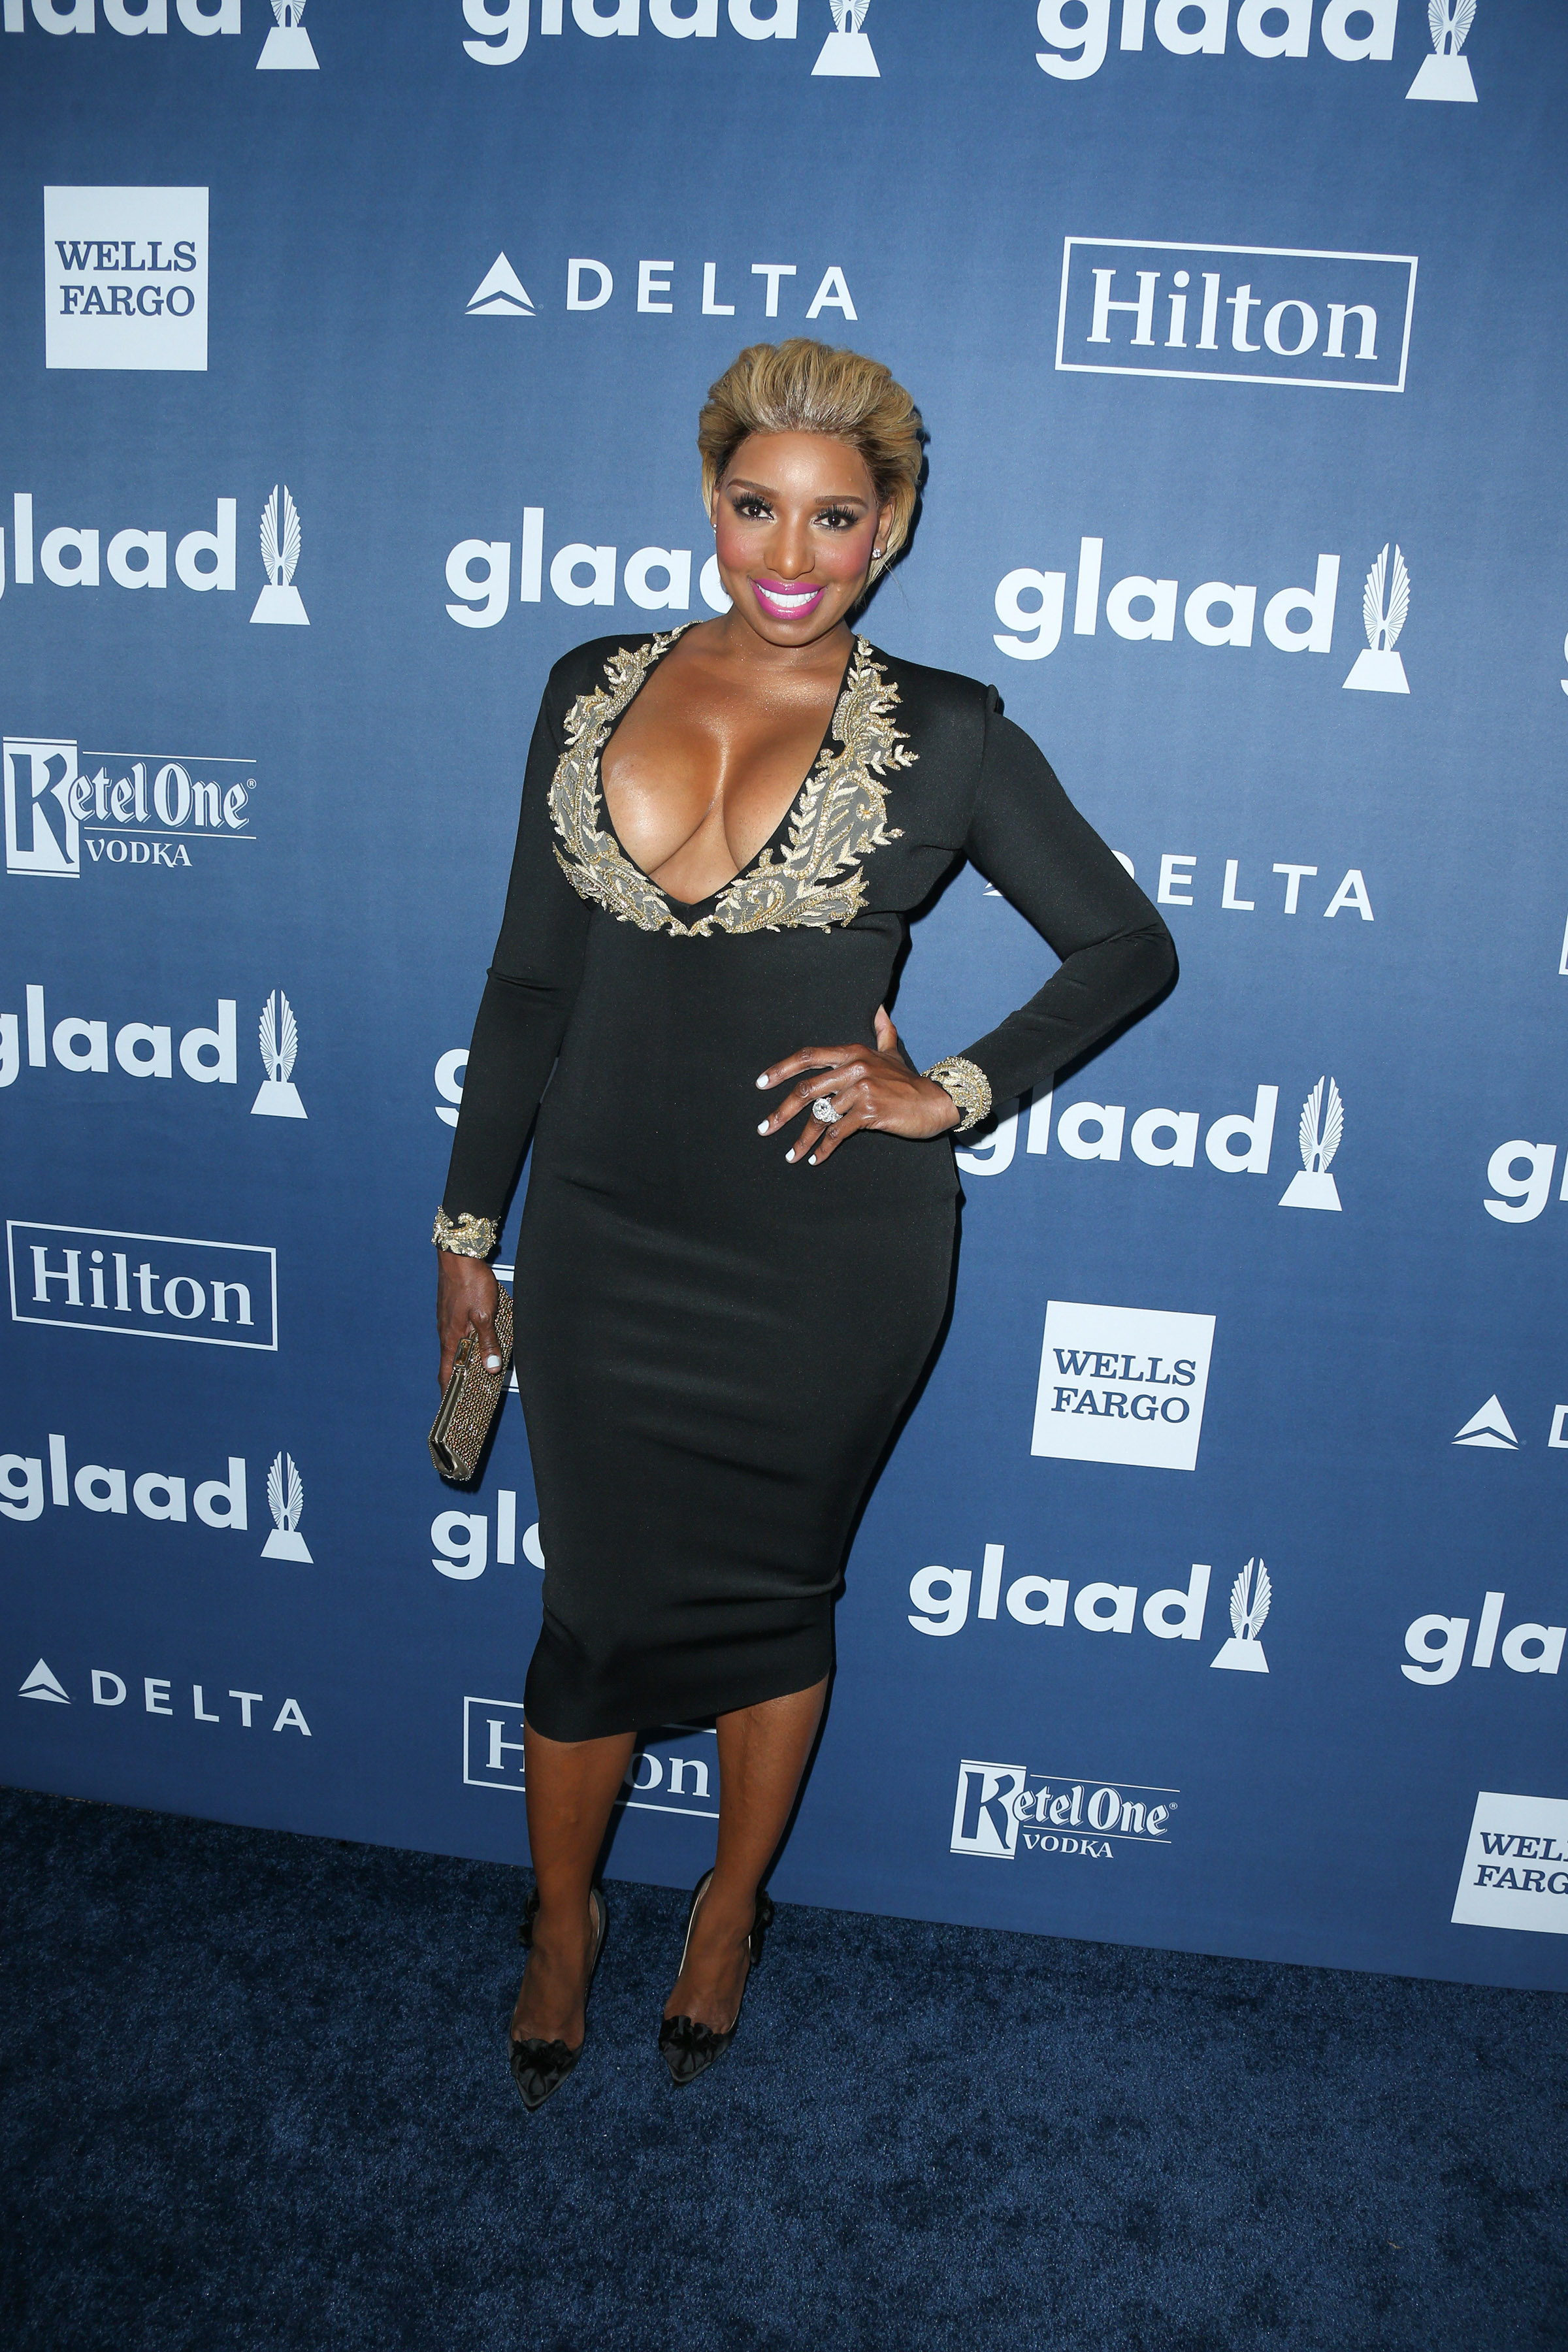 04/02/2016 - NeNe Leakes - 27th Annual GLAAD Media Awards - Arrivals - The Beverly Hilton Hotel - Beverly Hills, CA, USA - Keywords: Vertical, People, Person, Arrival, Portrait, Photography, Arts Culture and Entertainment, Celebrity, Celebrities, Topix, Bestof, Gay & Lesbian Alliance Against Defamation, GLBT, LGBT community, equality, lesbian, gay, bisexual, and transgender, Los Angeles, California Orientation: Portrait Face Count: 1 - False - Photo Credit: PRPhotos.com - Contact (1-866-551-7827) - Portrait Face Count: 1